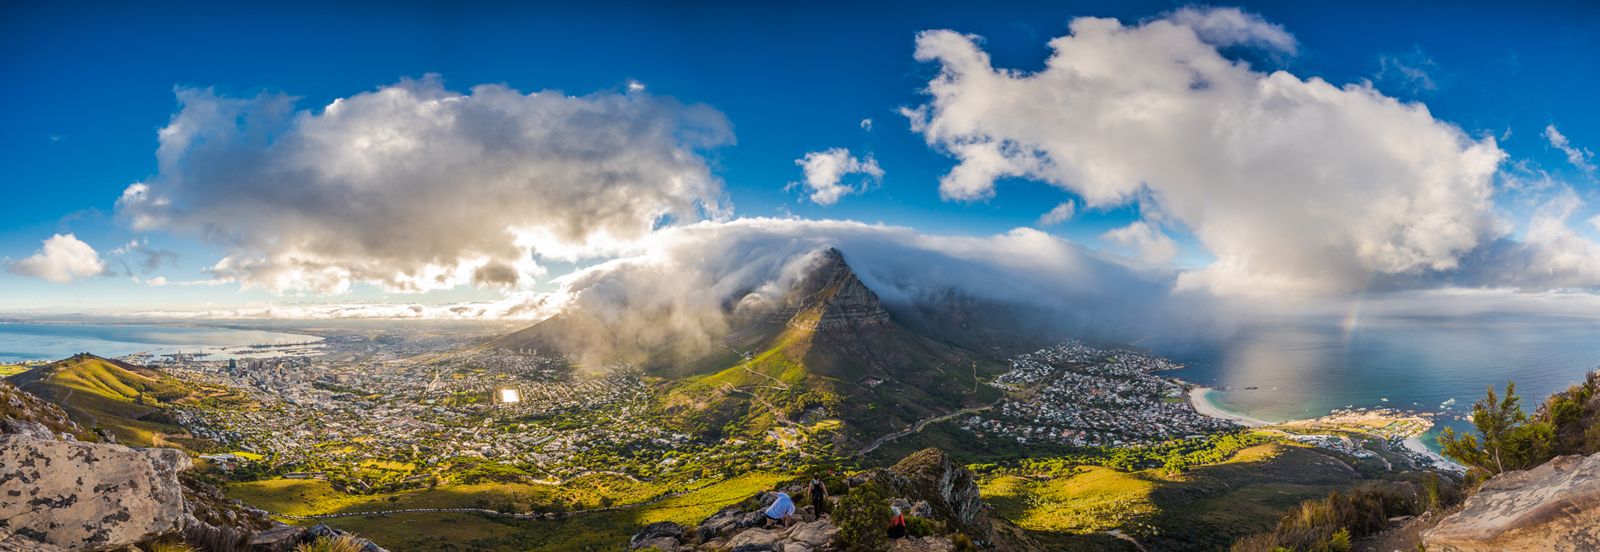 Panoramic of Cape Town, South Africa ©Denis Roschlau